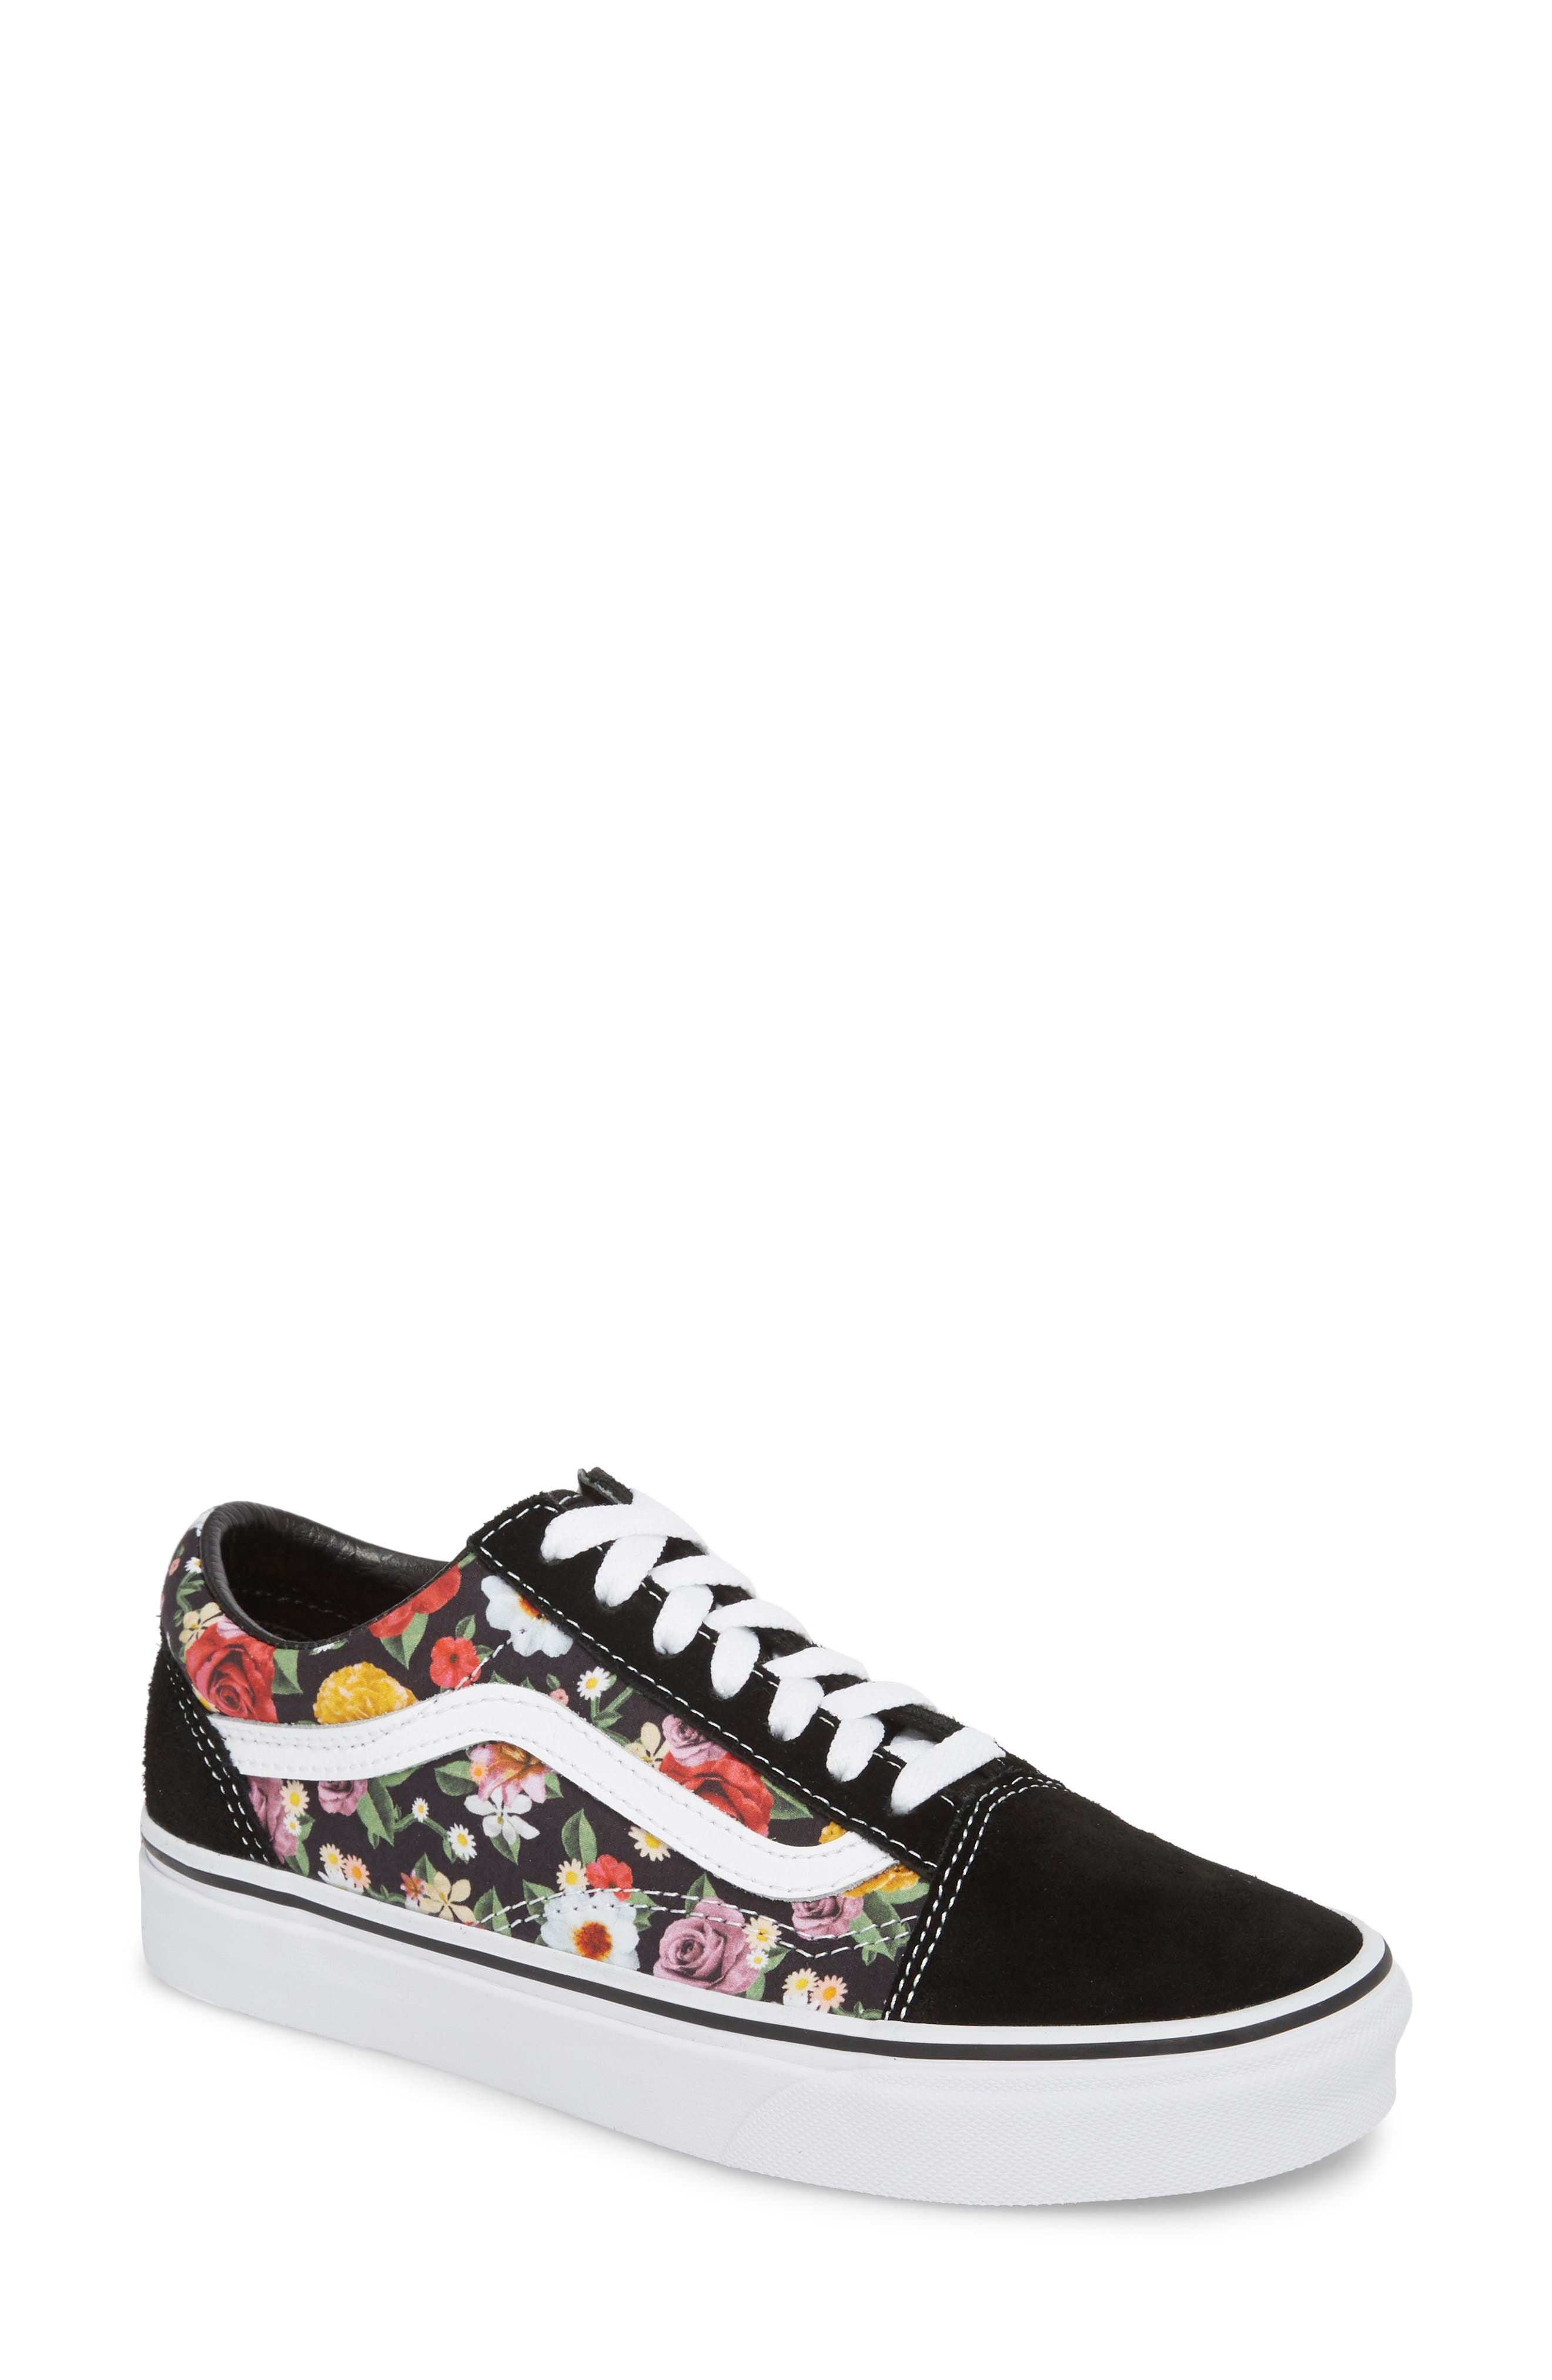 UA Old Skool Lux Floral Sneaker,                             Main thumbnail 1, color,                             001